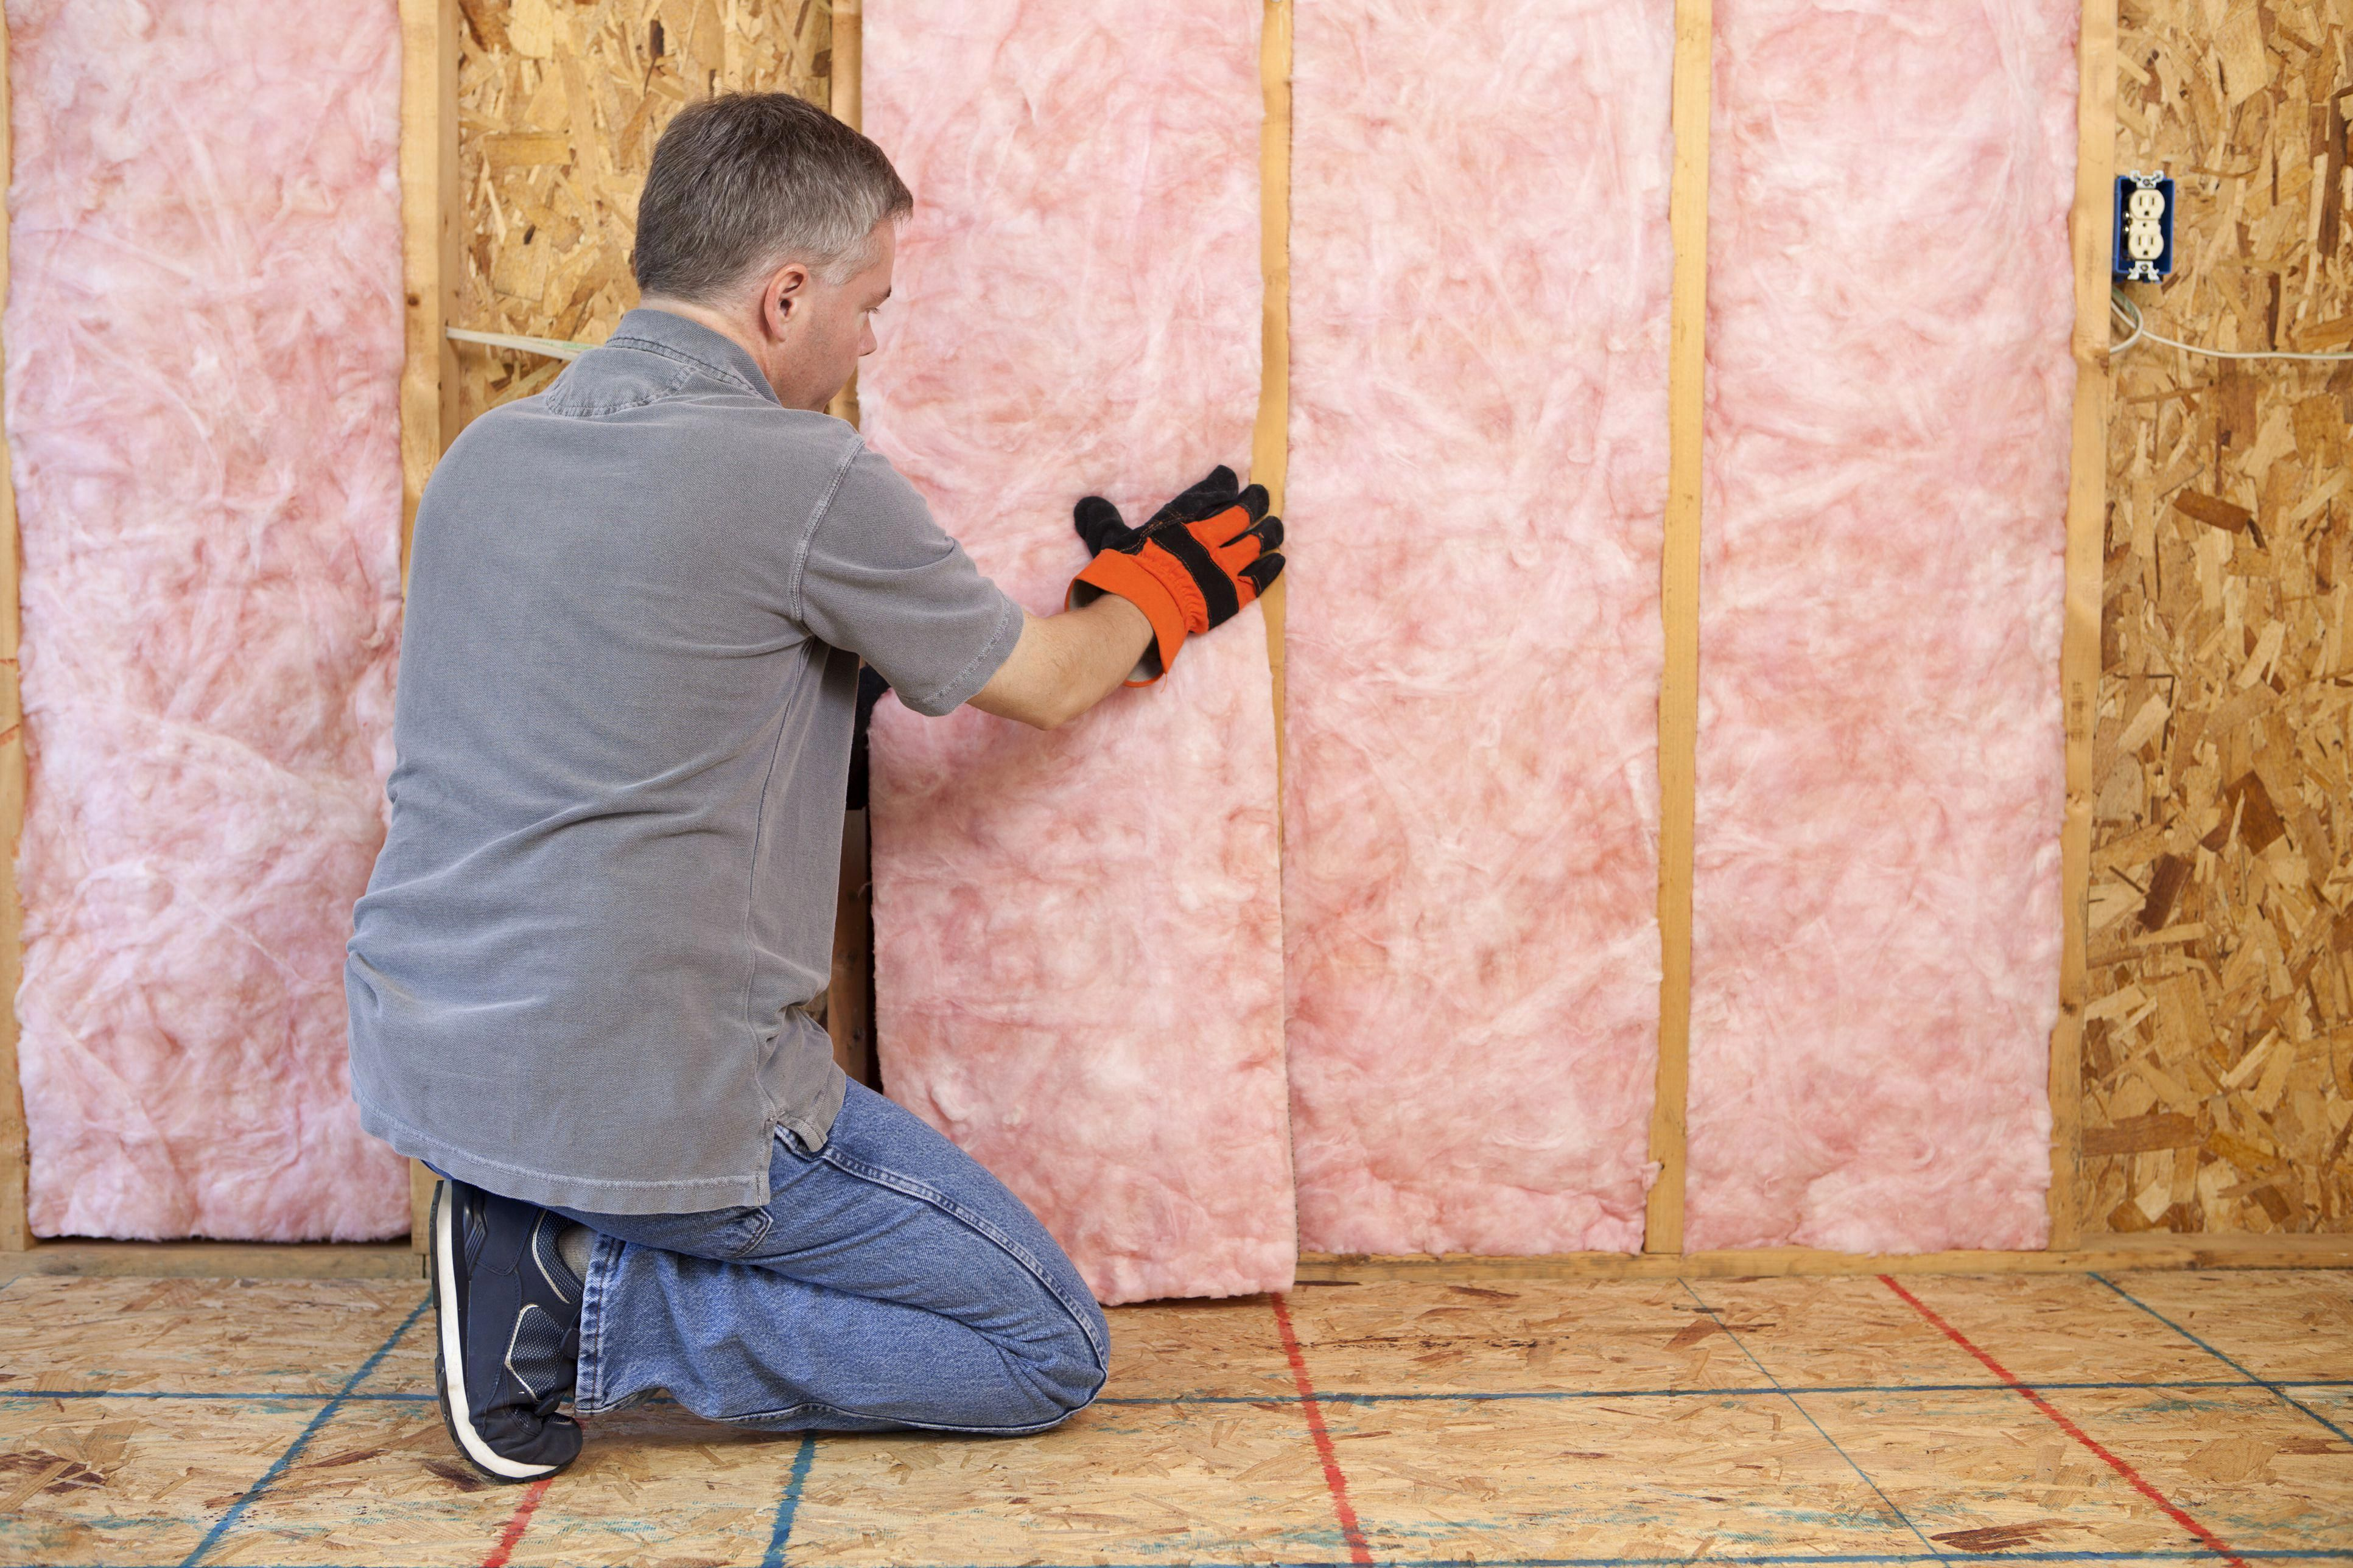 Learn How To Install Fiberglass Roll Or Batt Insulation In Your Open Walls Before The Drywall Goes In P Garage Insulation Installing Insulation Home Insulation